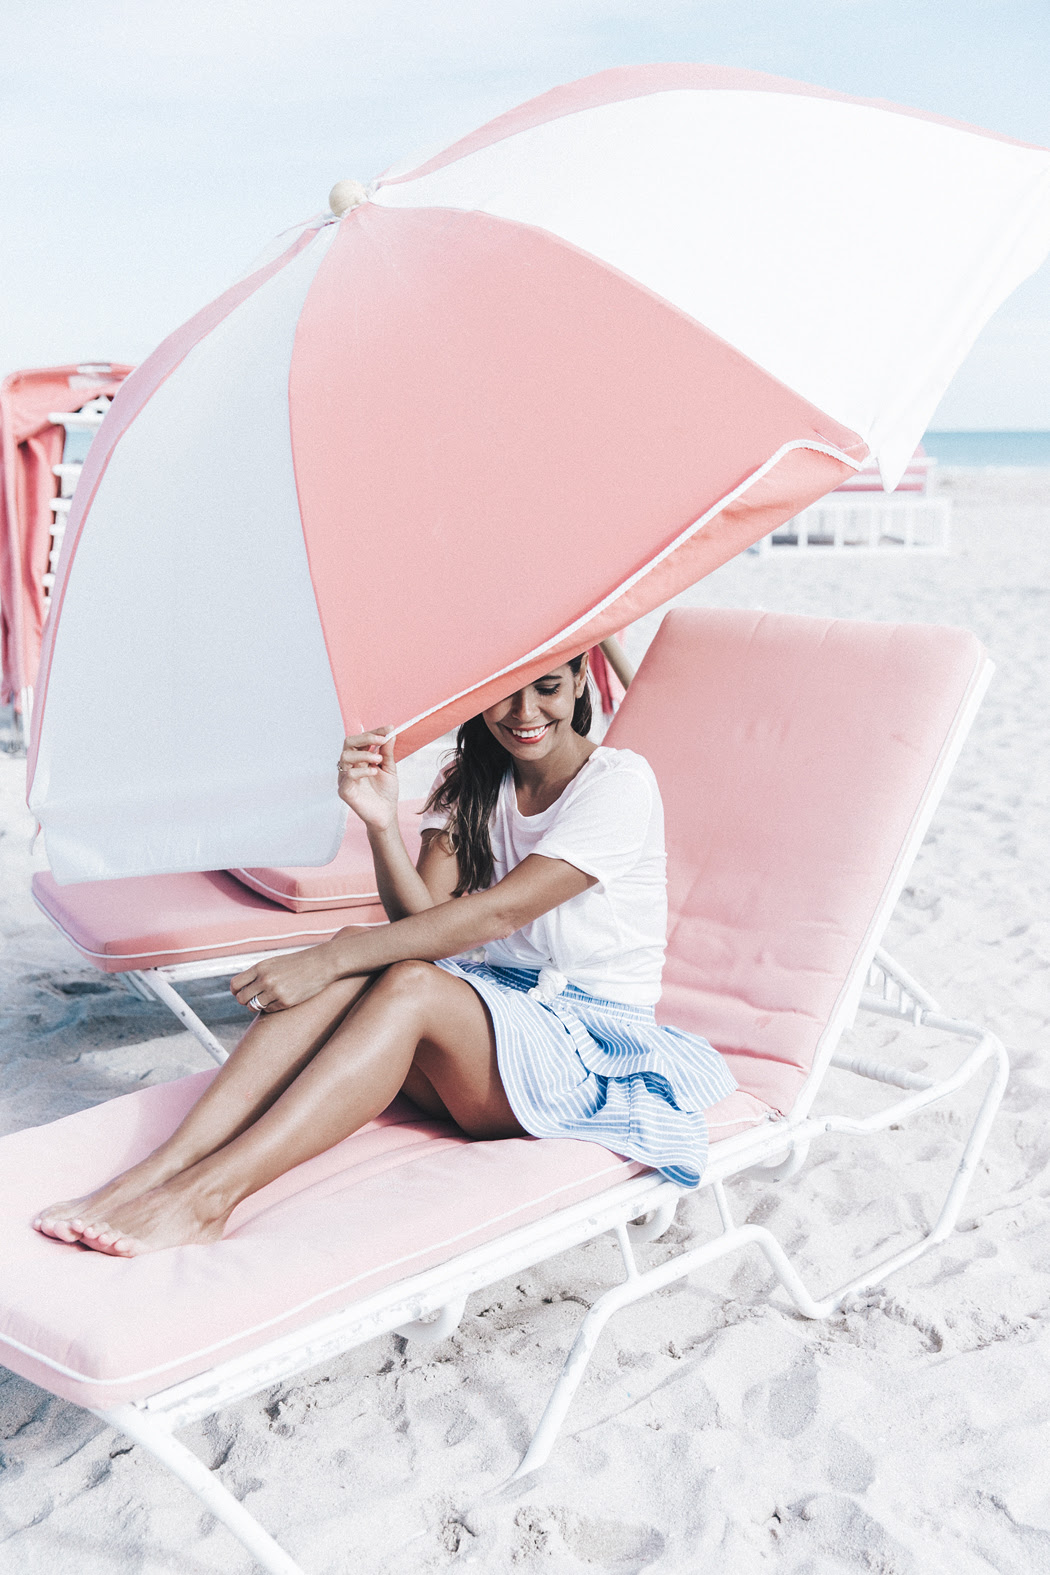 Miami-Striped_Skirt-Knotted_Top-Beach-South_Beach-Candy_Colors-Collage_On_The_Road-Street_Style-OUtfit-38